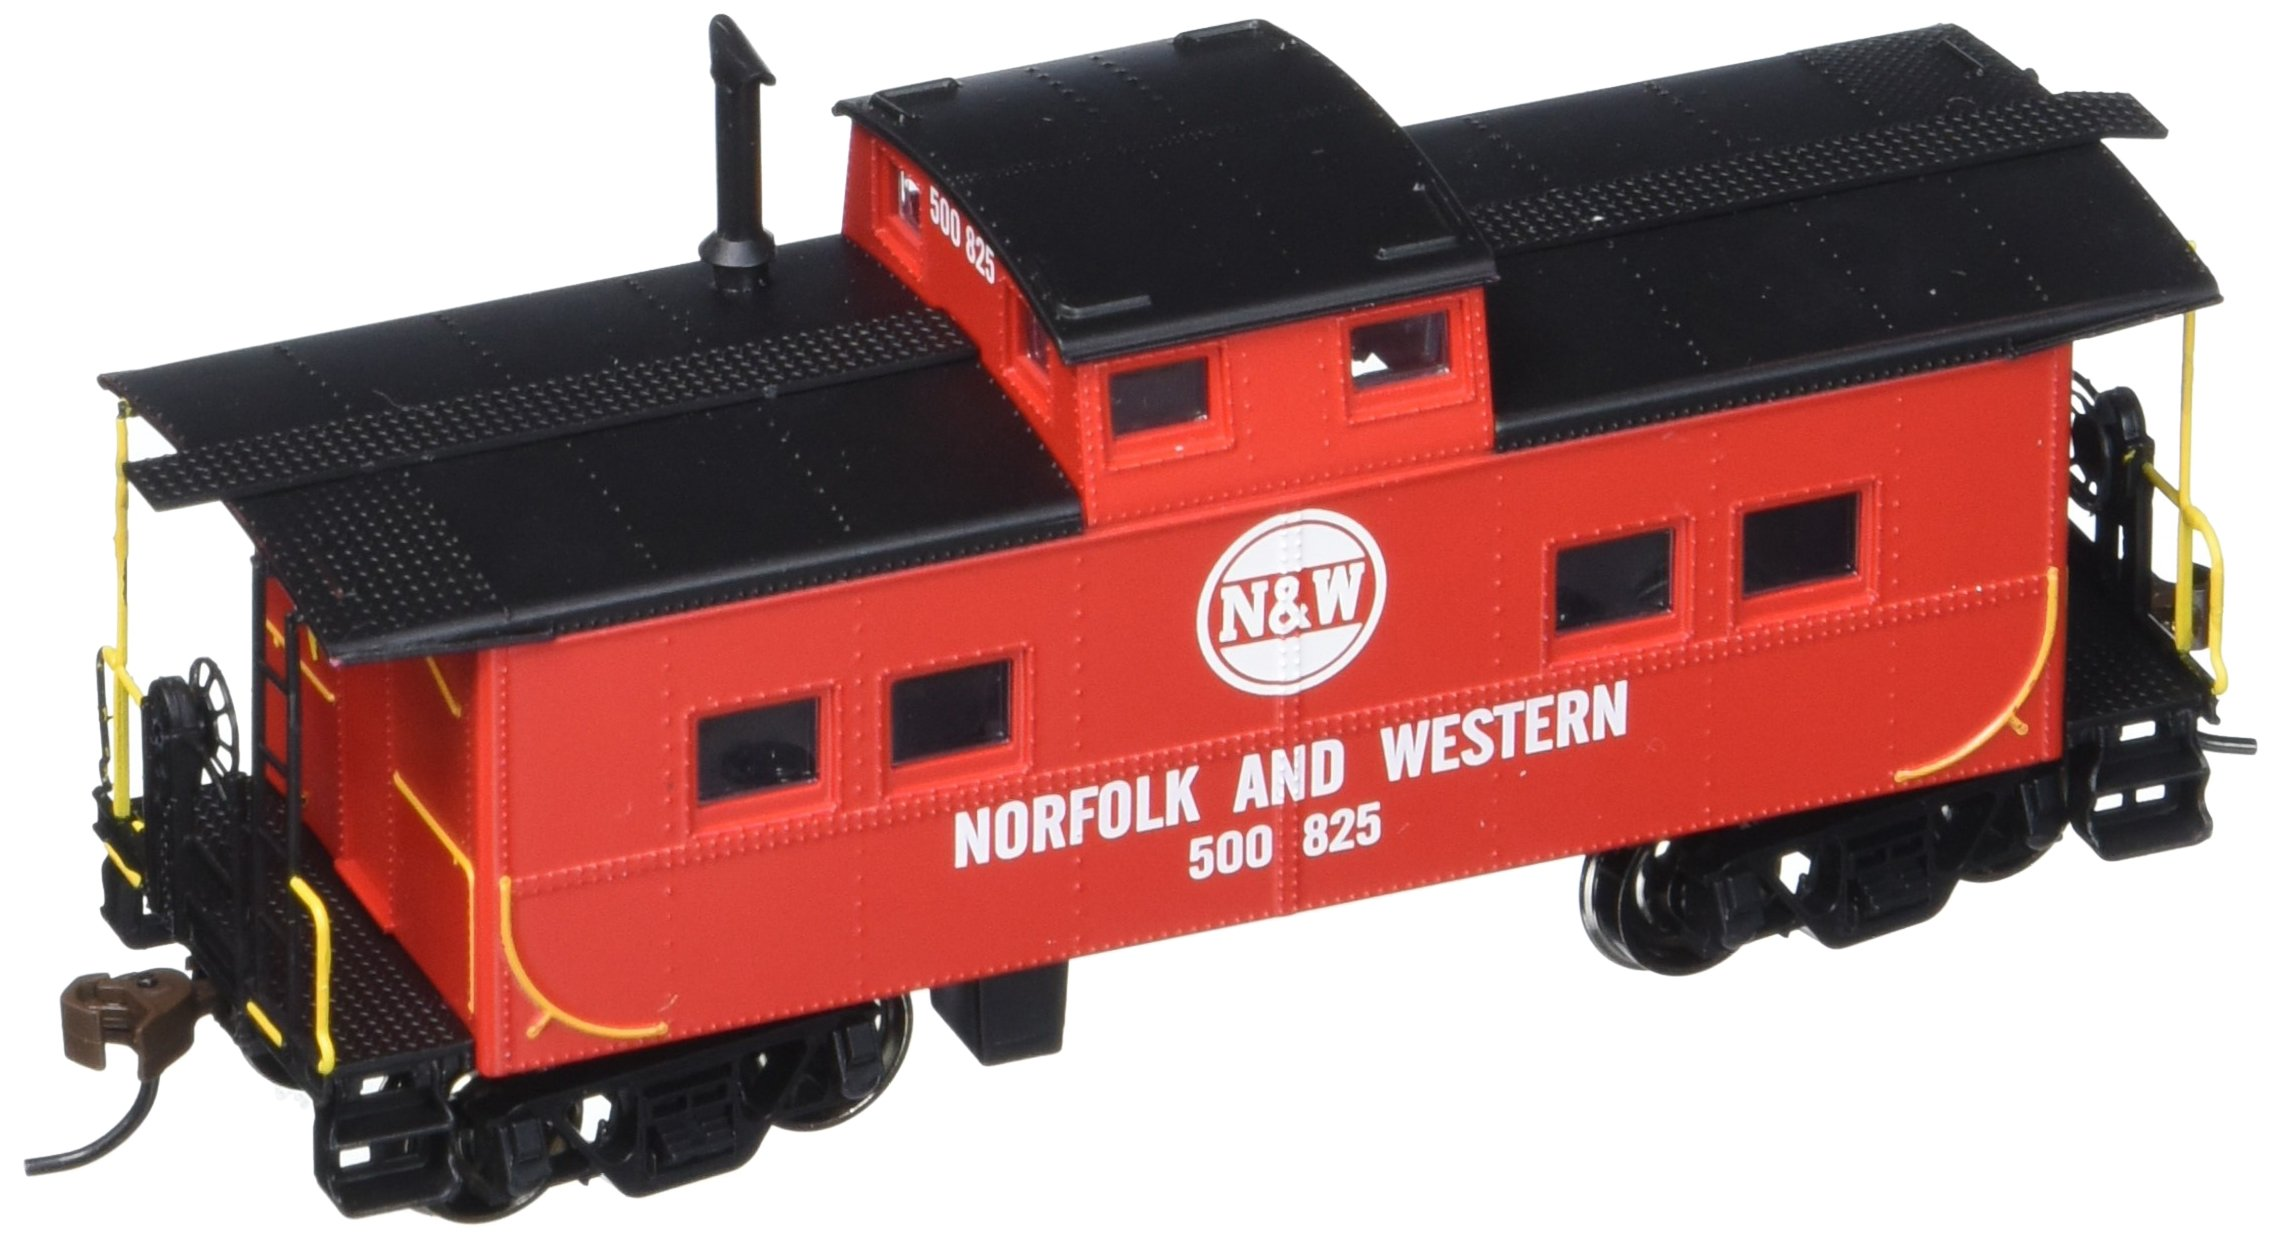 Bachmann Industries Norfolk & Western Red #500825 Northeast Steel Caboose (HO Scale Train) by Bachmann Trains (Image #1)